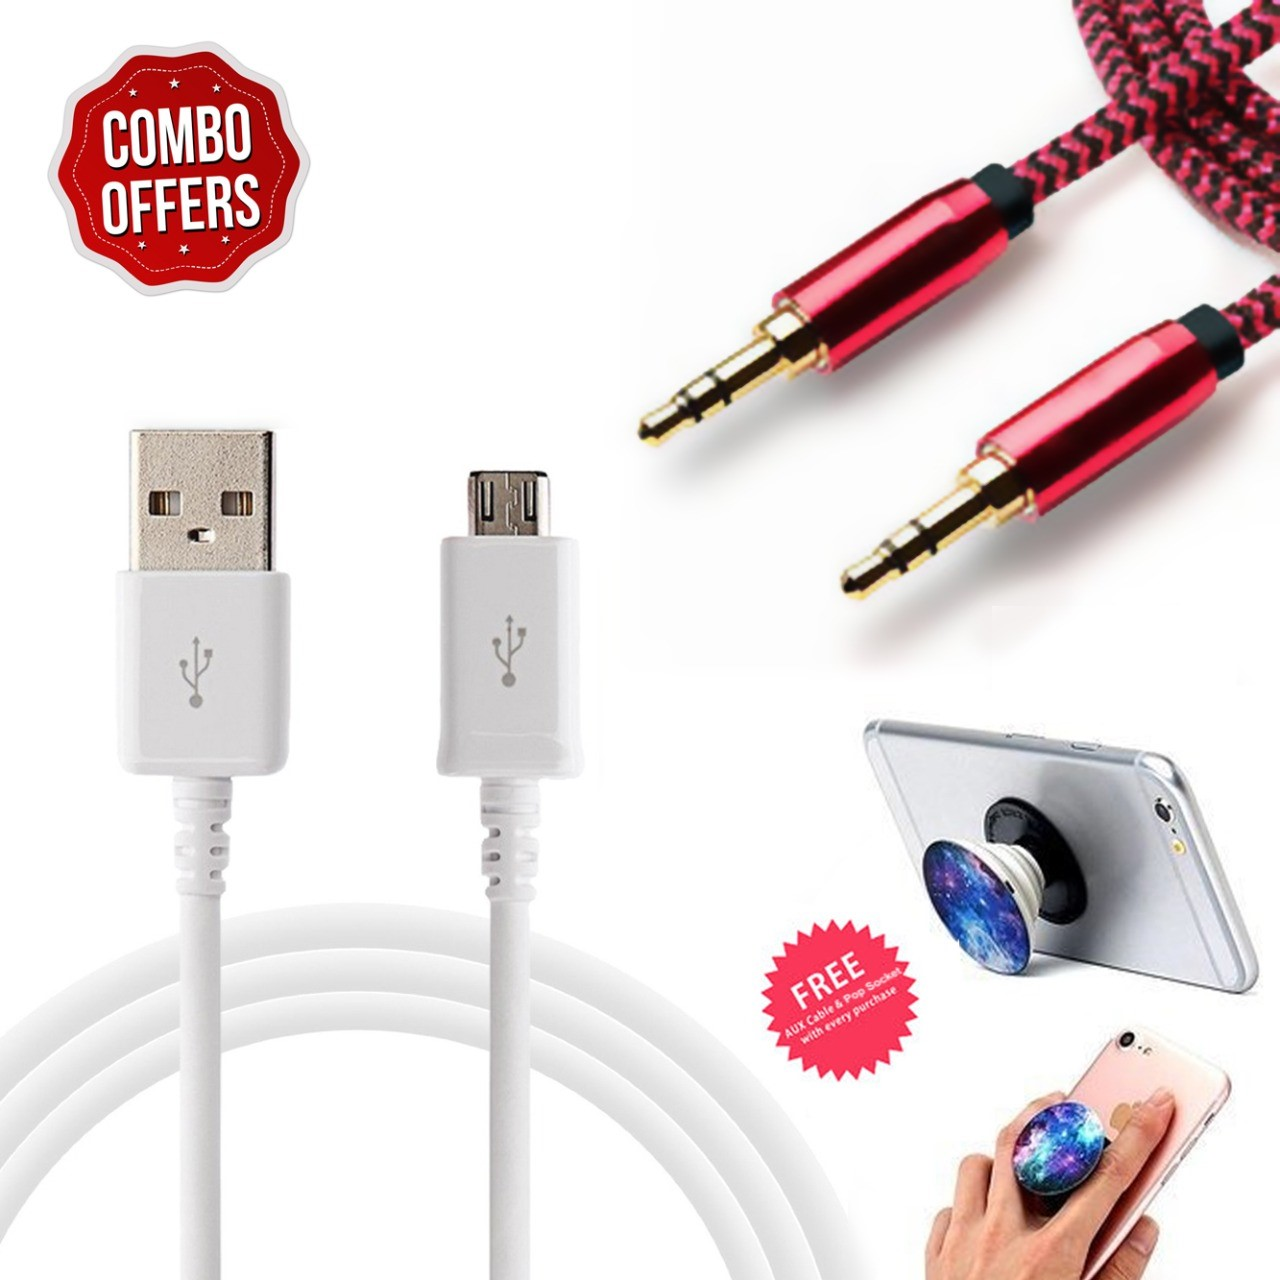 Fast Charging USB Cable  1.5 Meter  With AUX Cable And Pop Socket by Wake Wood